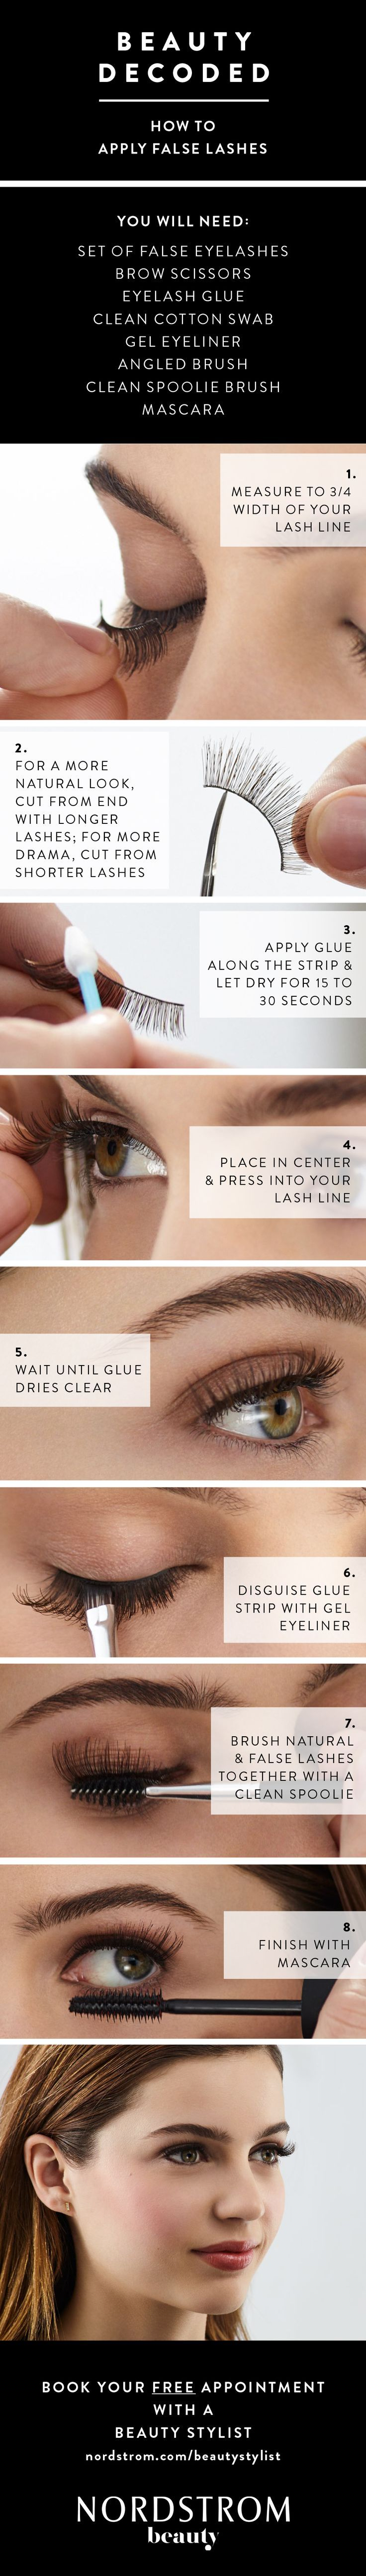 How to apply false lashes in 7 easy steps. Tips from the…